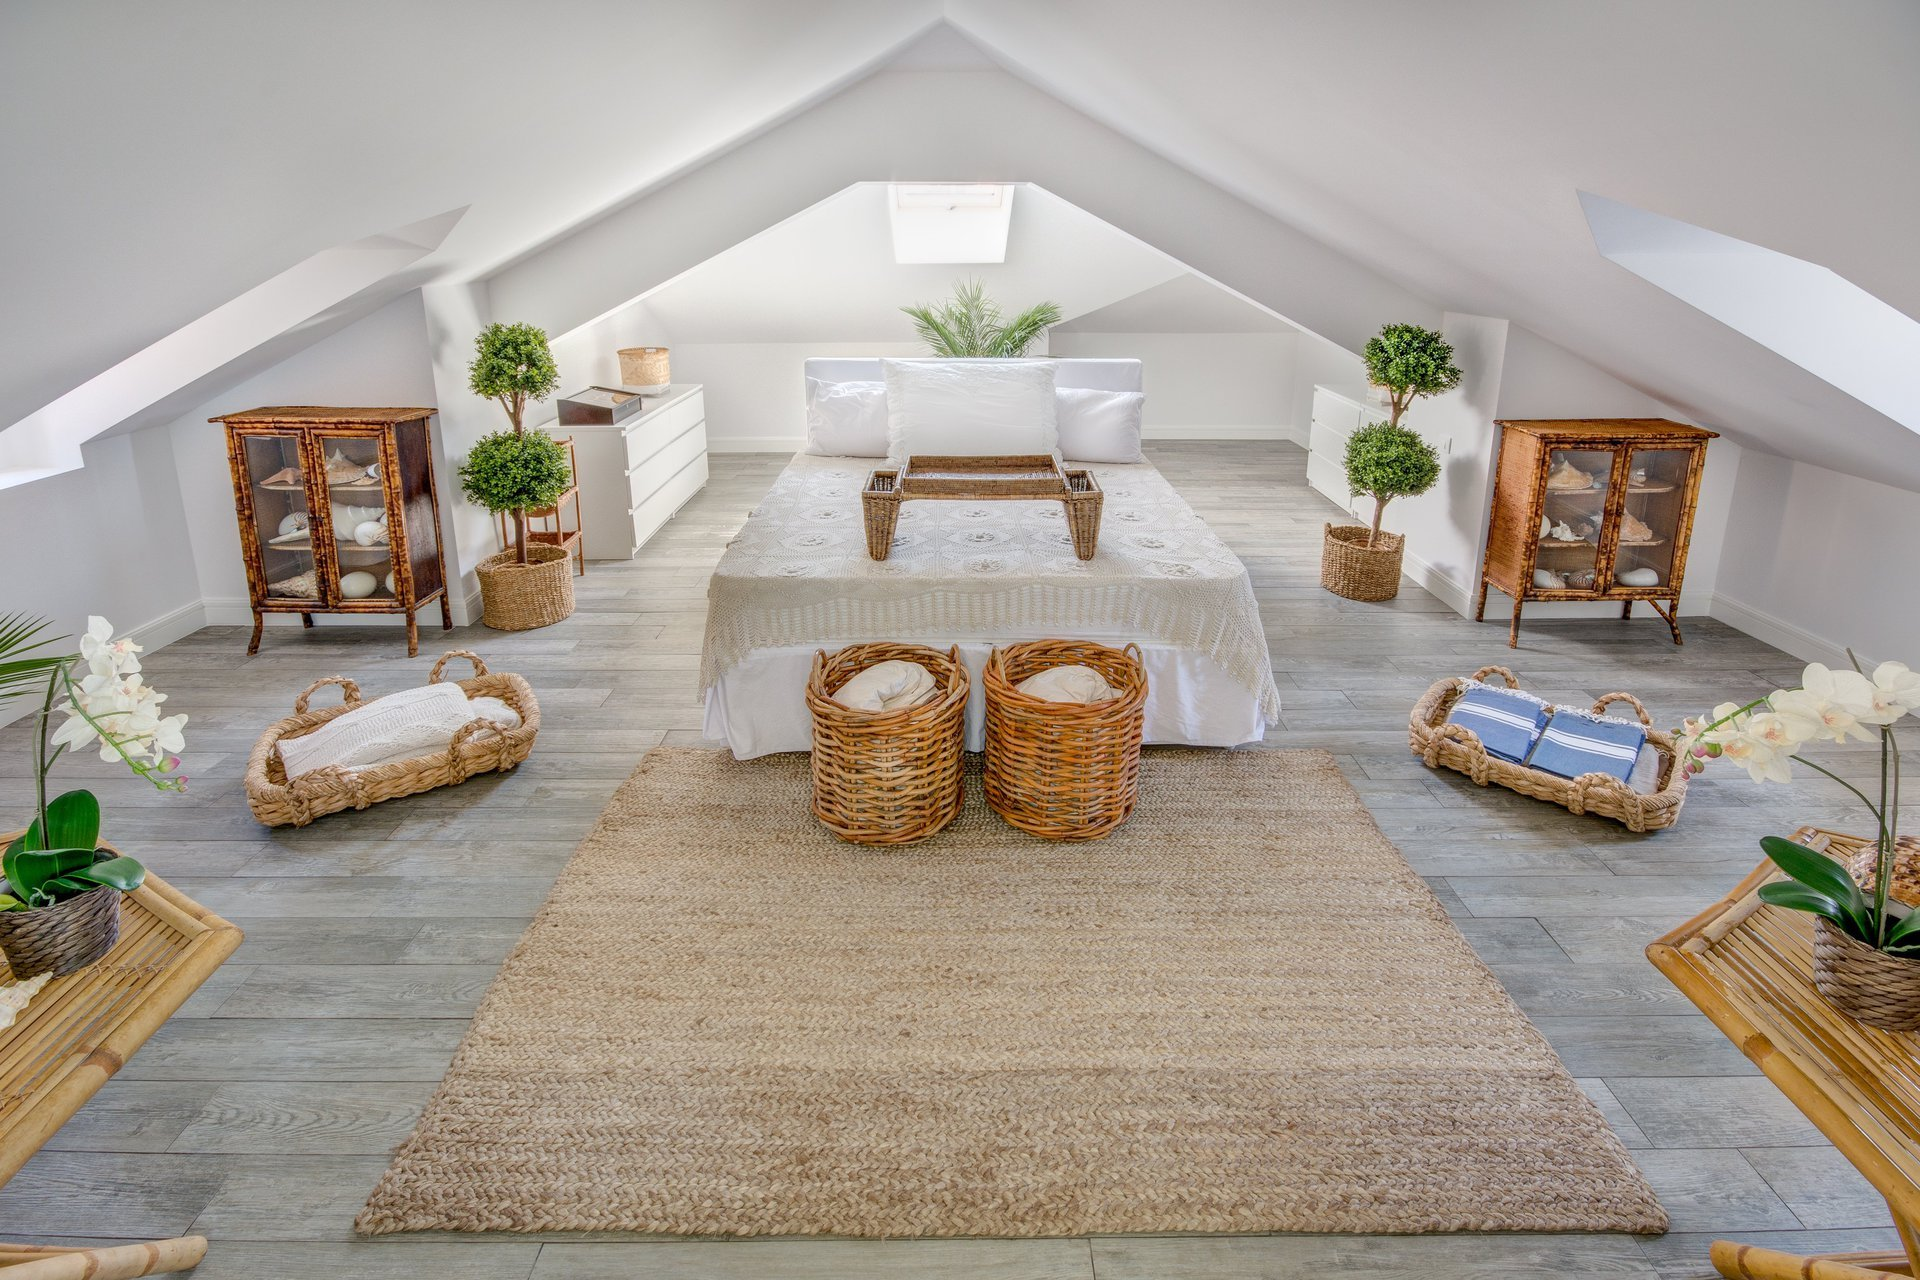 We love entertaining, how would you design a space to host friends and  family?